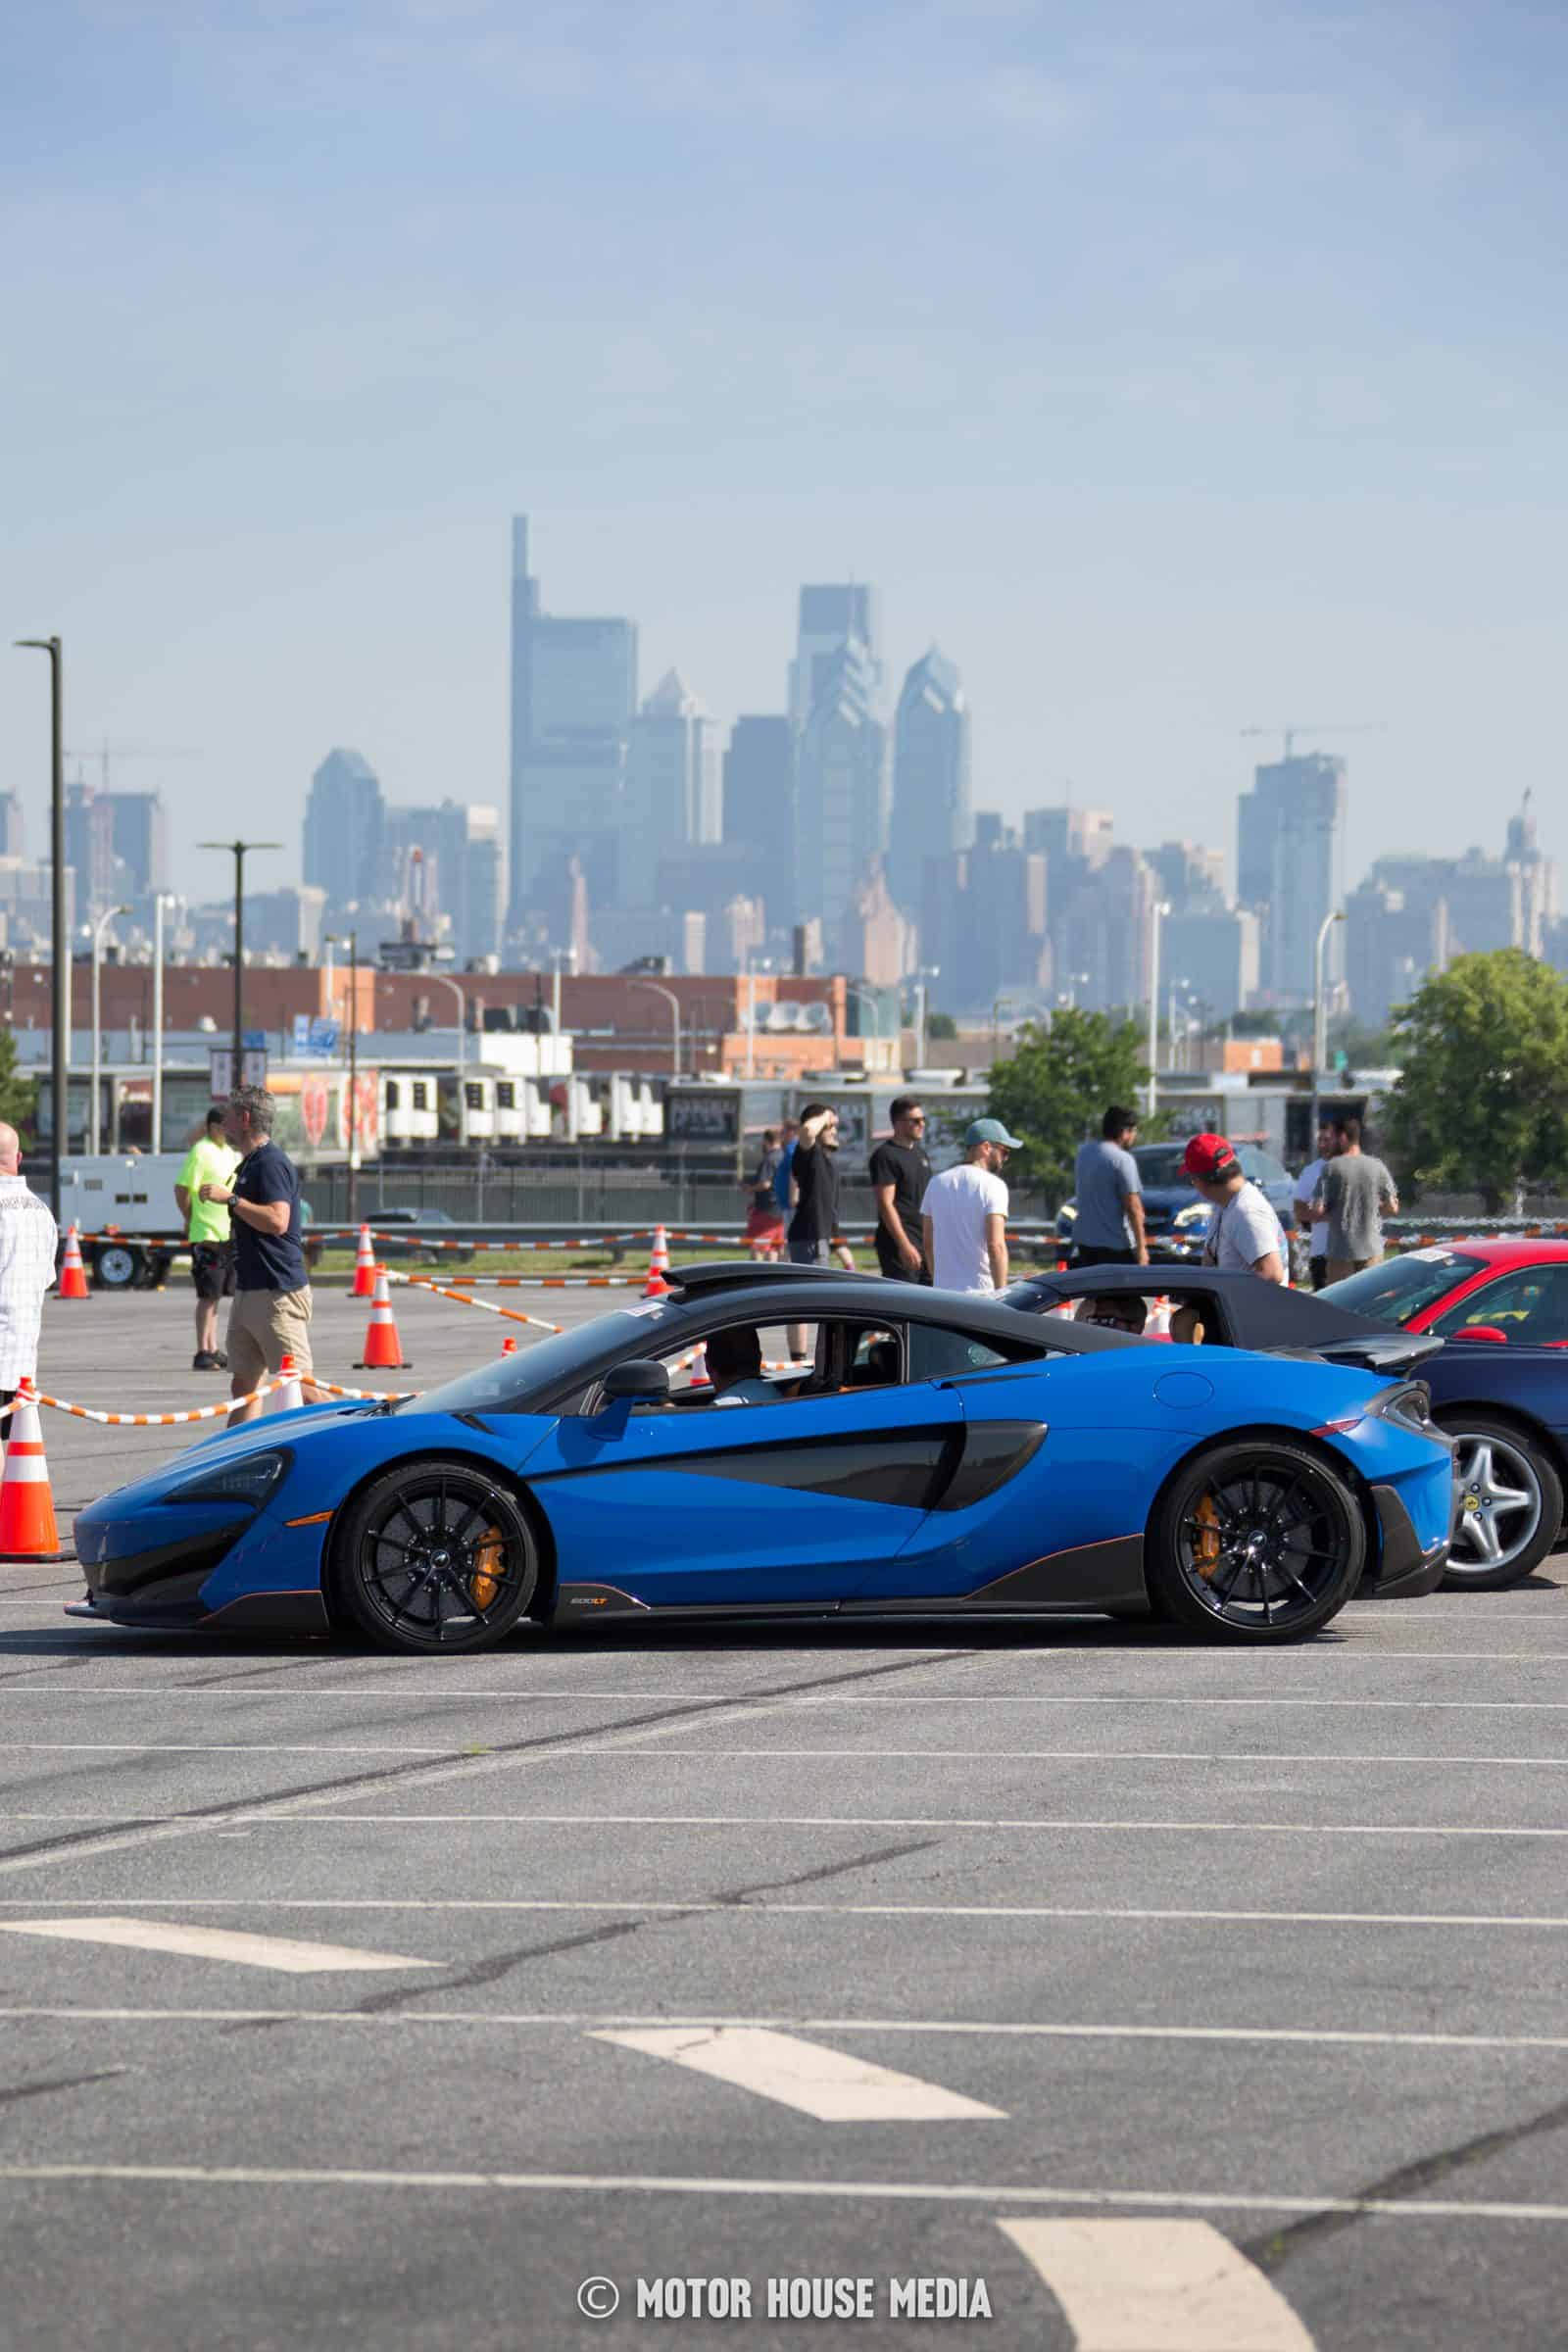 Super car with Philly in the background